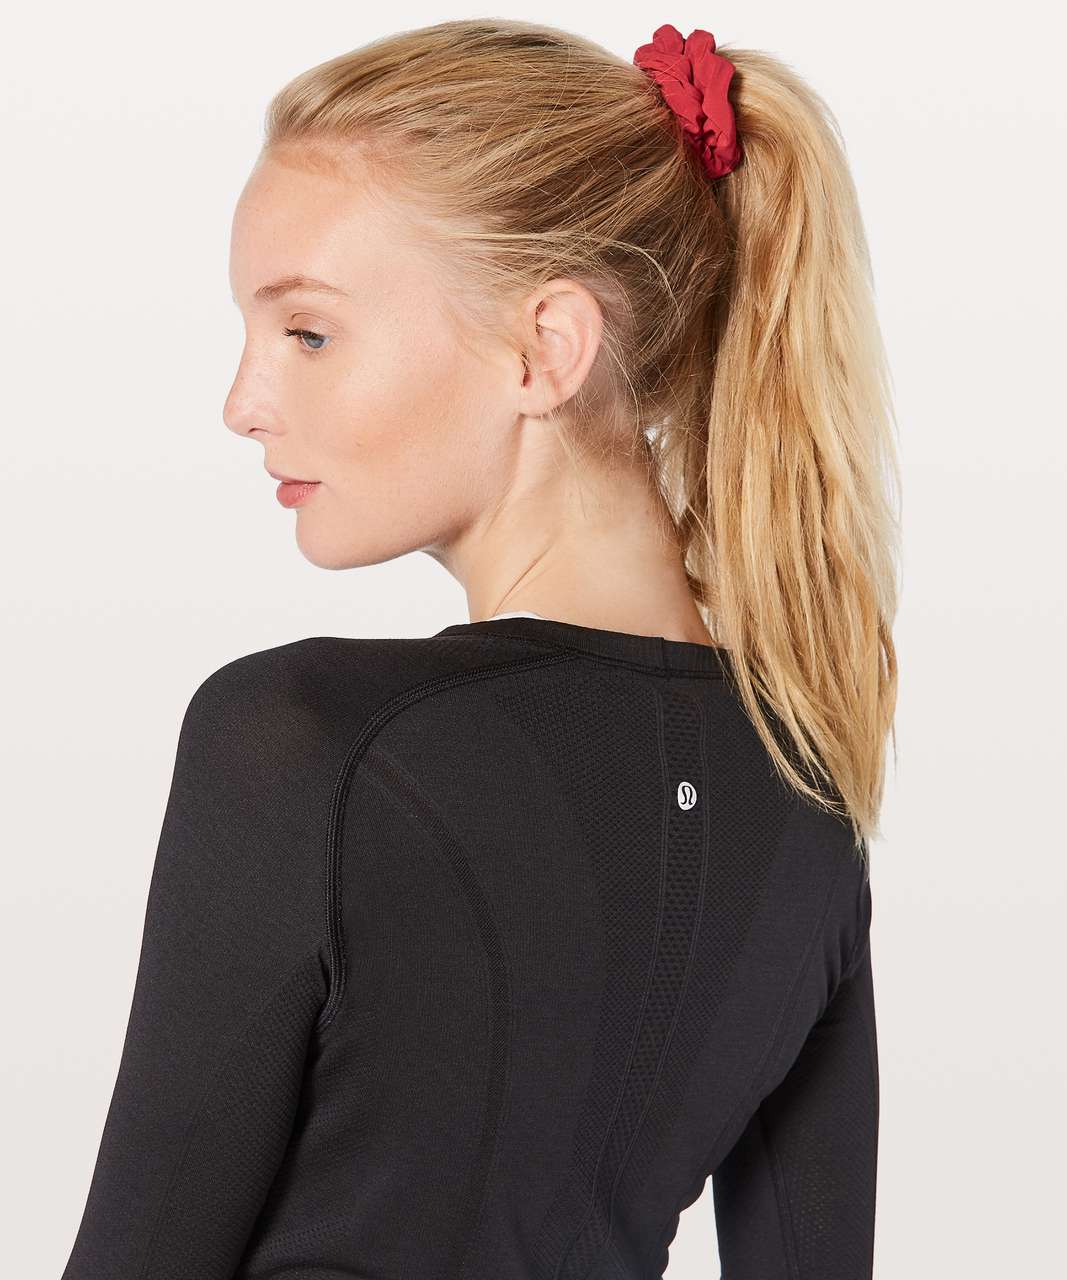 Lululemon Uplifting Scrunchie - Persian Red